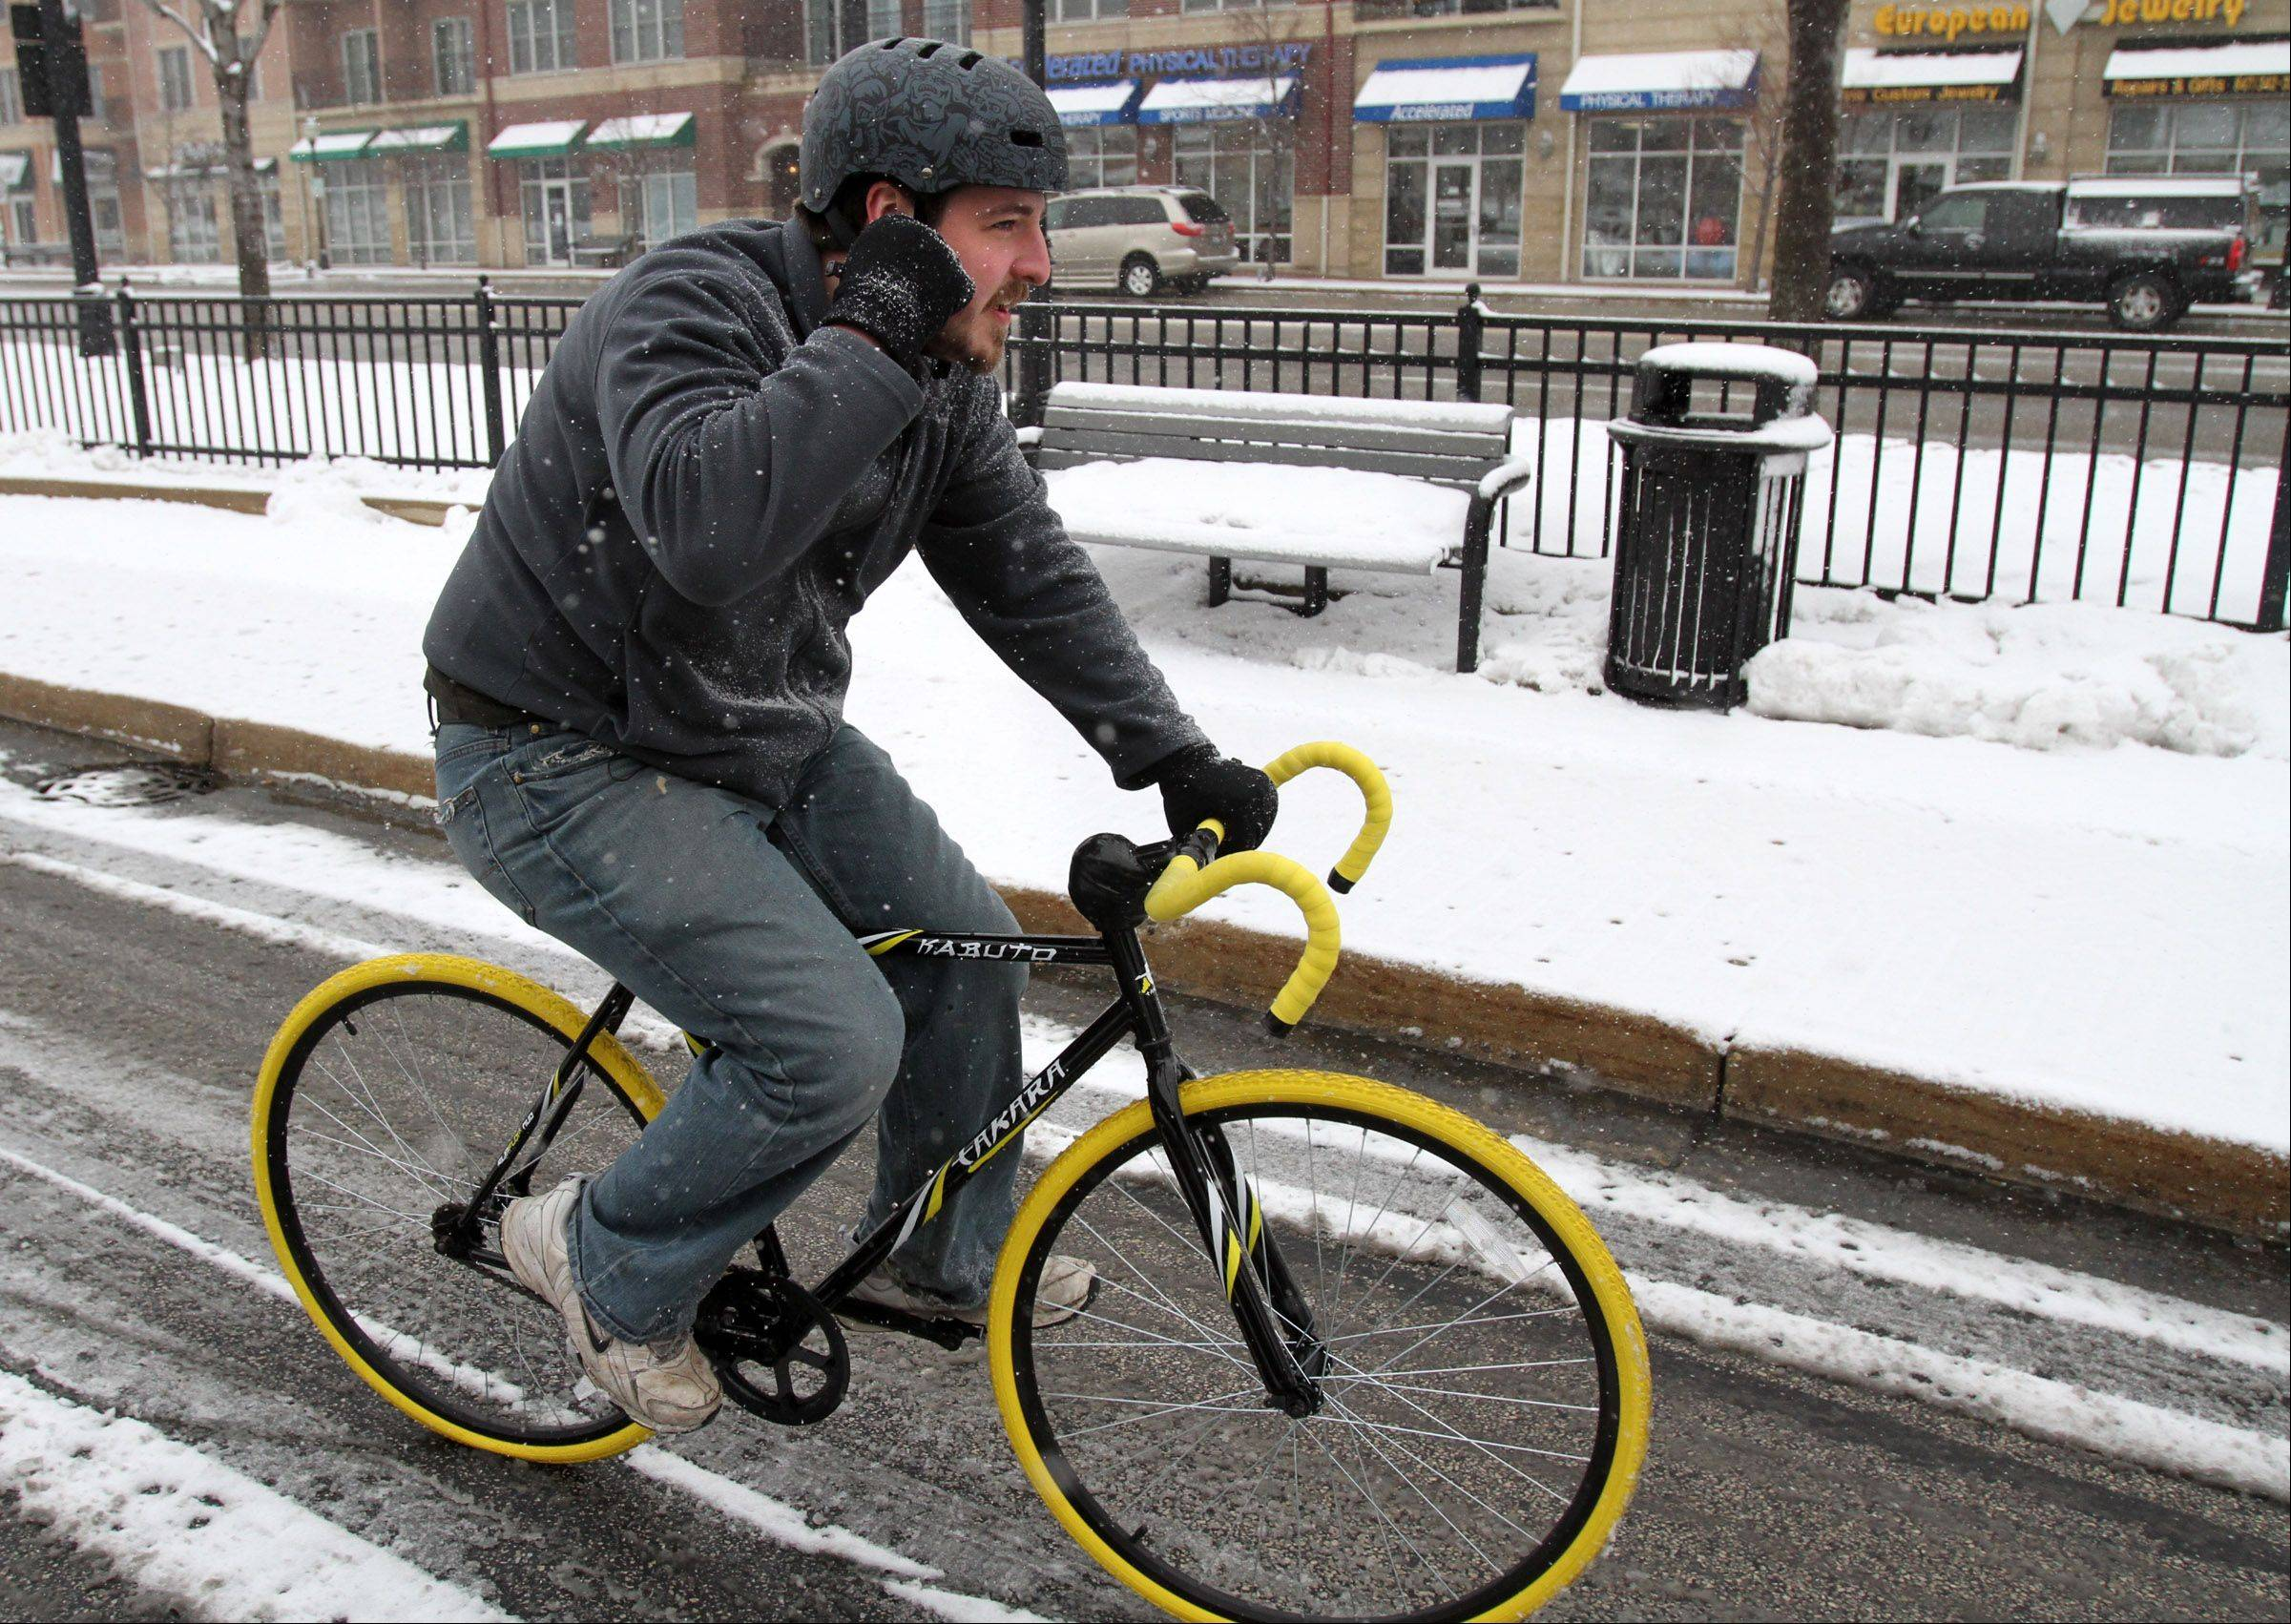 Andy Harwood, of Mount Prospect, is able to talk on his cellphone and maneuver his bike in light snow near the Mount Prospect Metra station Tuesday morning.